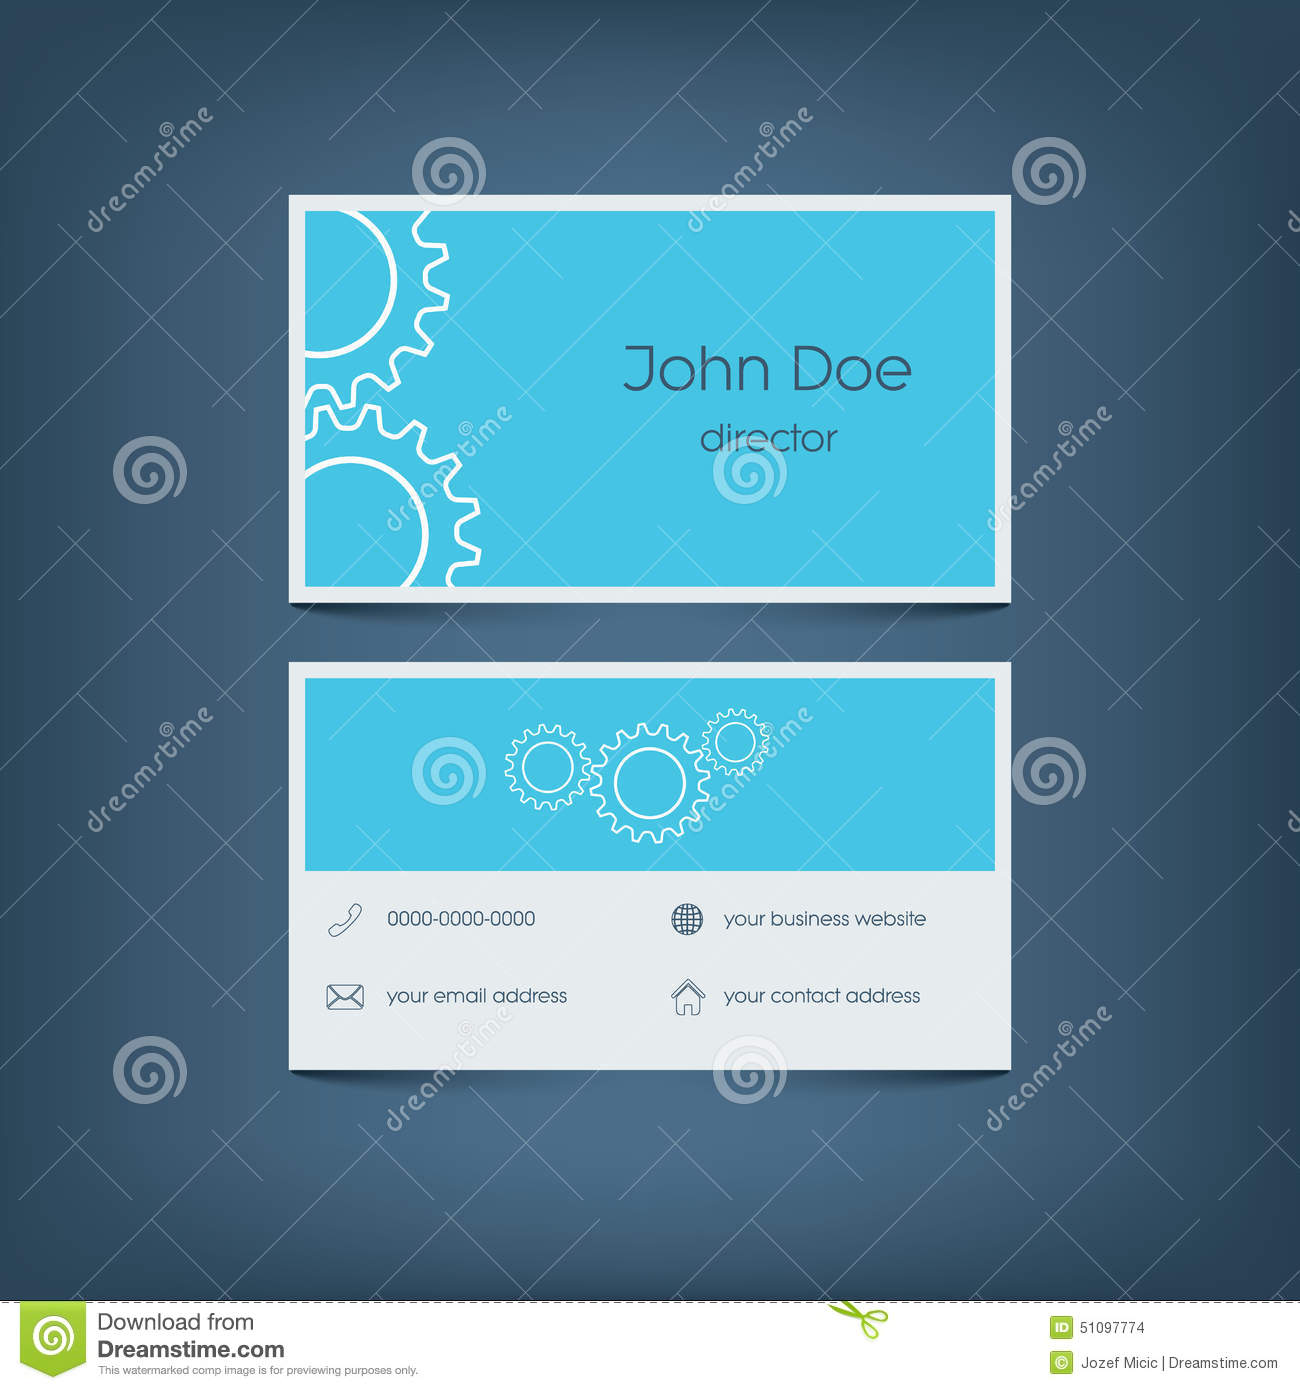 Modern flat design business card template graphic stock vector download modern flat design business card template graphic stock vector illustration of flat cheaphphosting Gallery